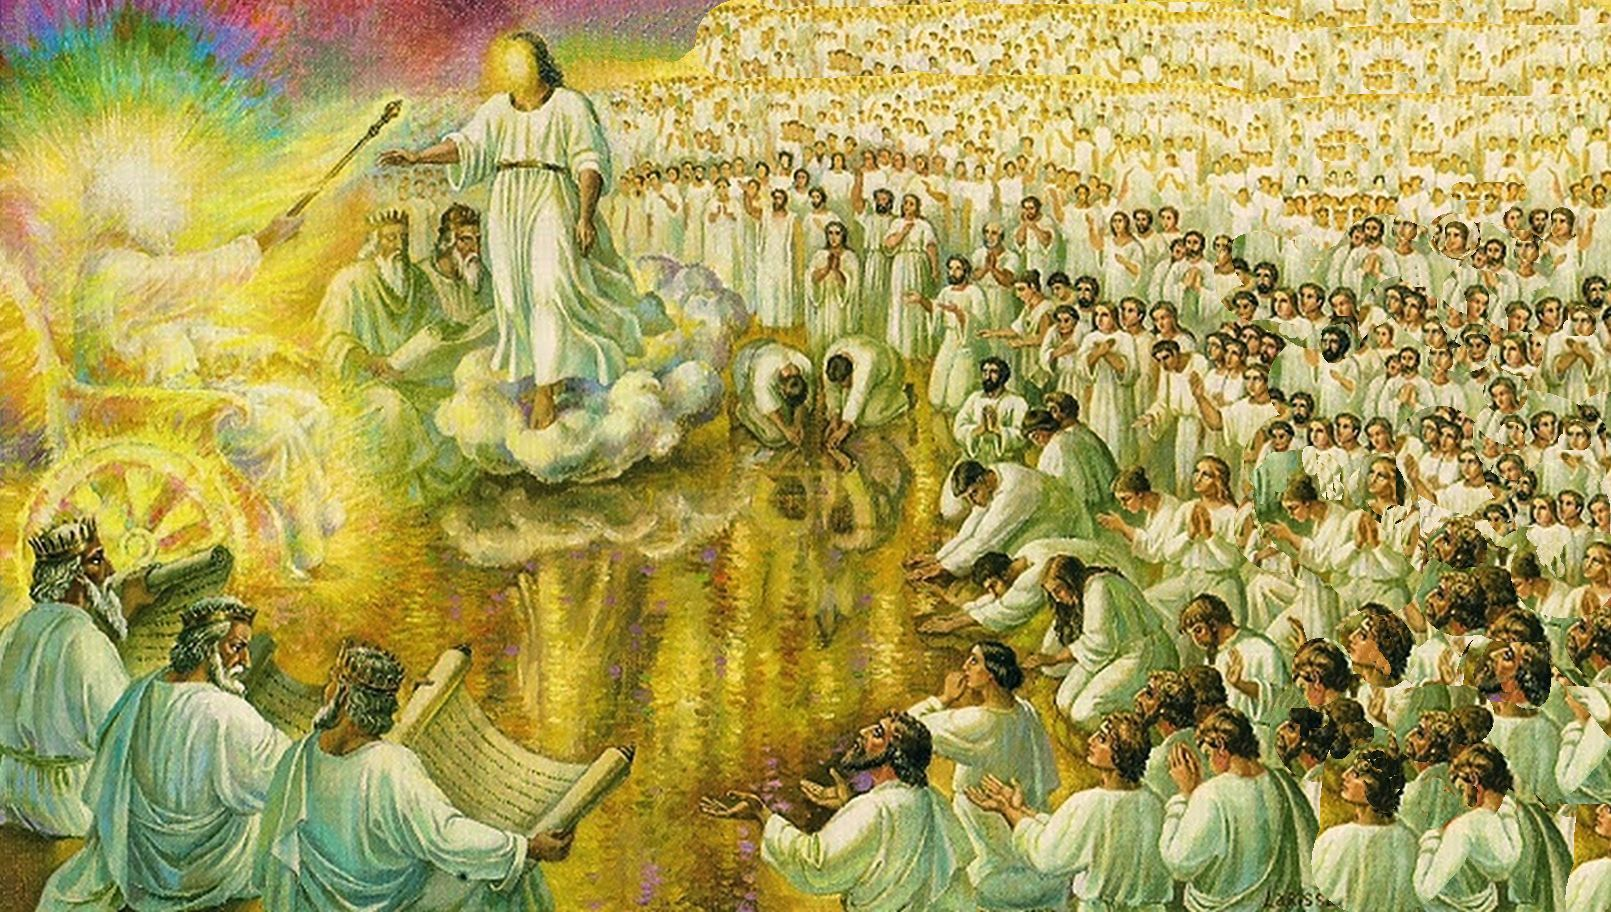 I Am Coming Soon Revelation 14 The Lamb And The 144 000 In 2020 Revelation 14 Revelation Babylon The Great